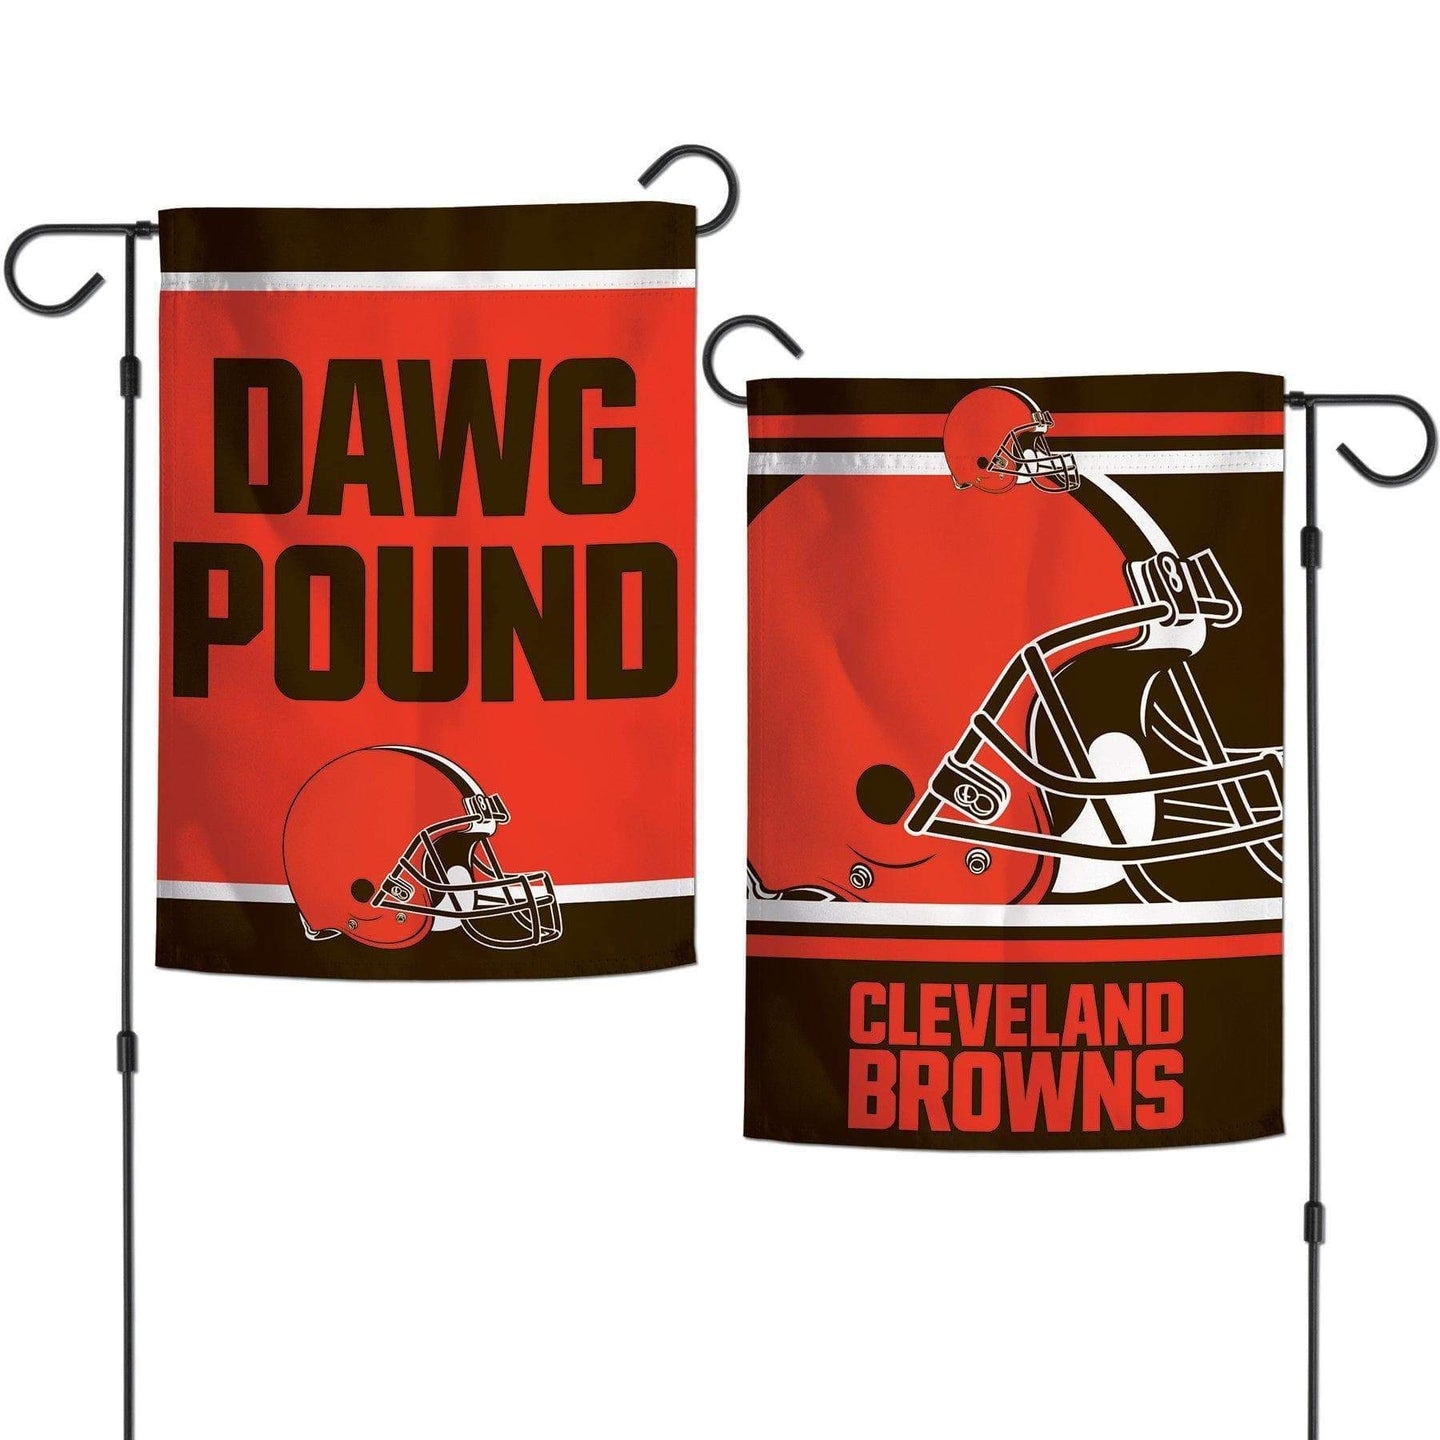 Two-Sided Cleveland Browns Garden Flag - Conrads College Gifts